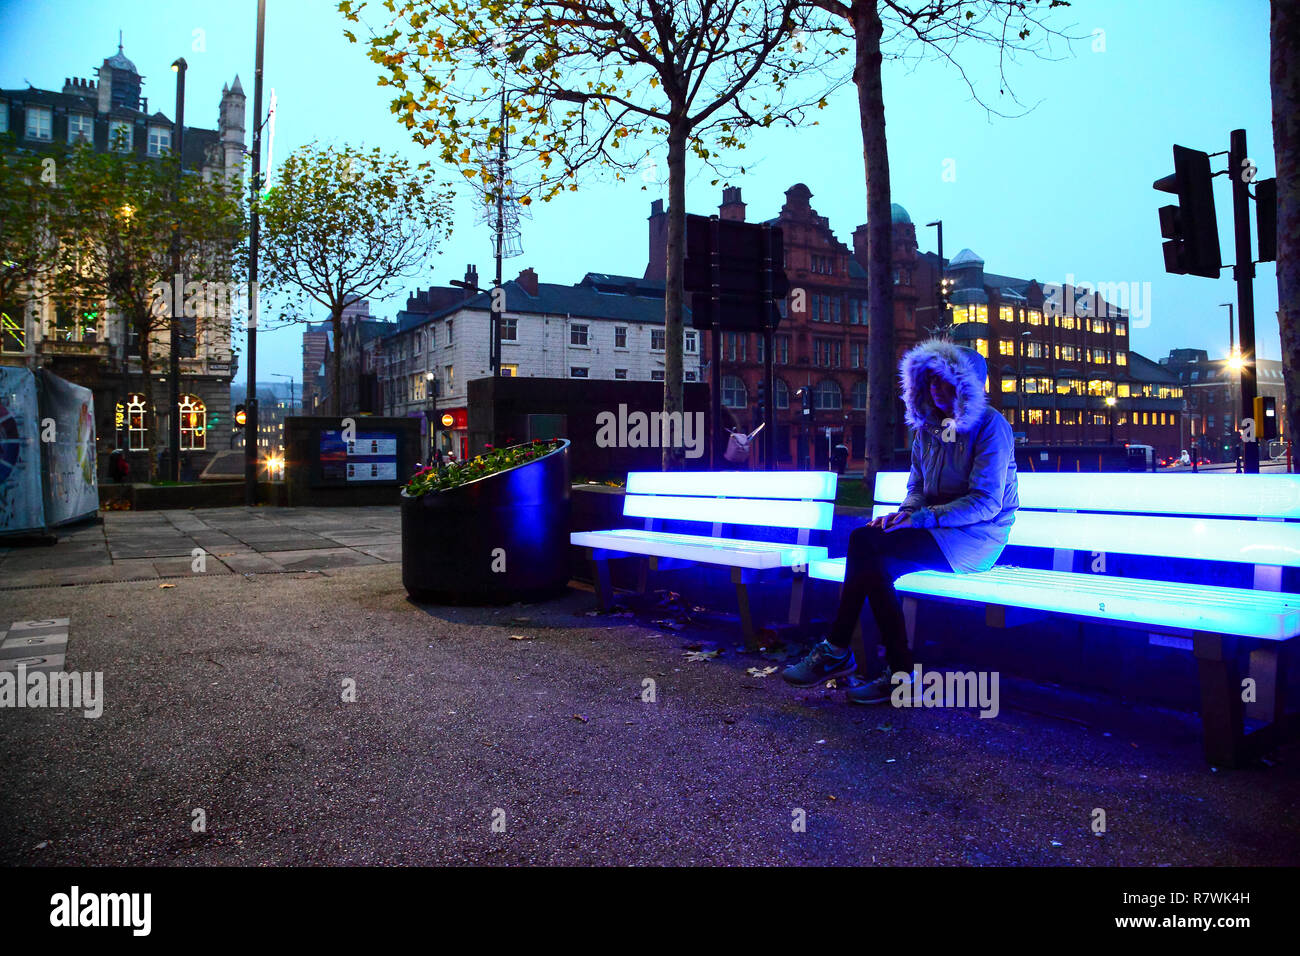 Leeds, UK. 11th December 2018 - Leeds, UK. Late afternoon shoppers in Leeds were met with an array of Christmas lights and festive displays. Among the displays were five illuminated benches situated outside Leeds Art Gallery and library. Credit: Drew Gardner/Alamy Live News Stock Photo